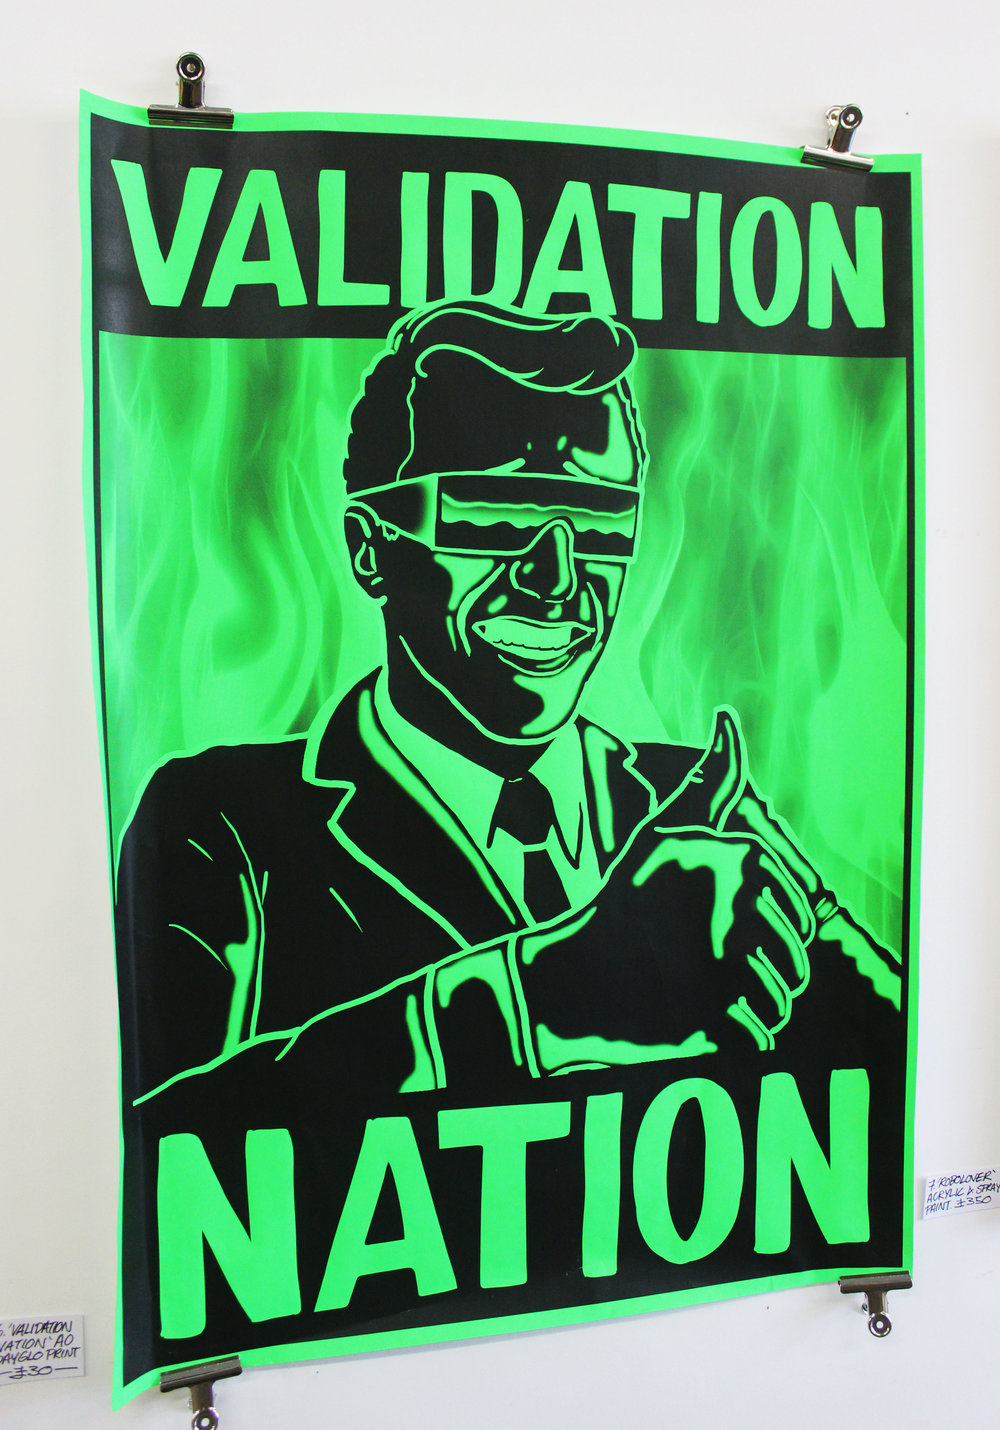 VALIDATION NATION ALLEYKATS ARTWORK POSTER GRAPHIC GREG AK.jpg